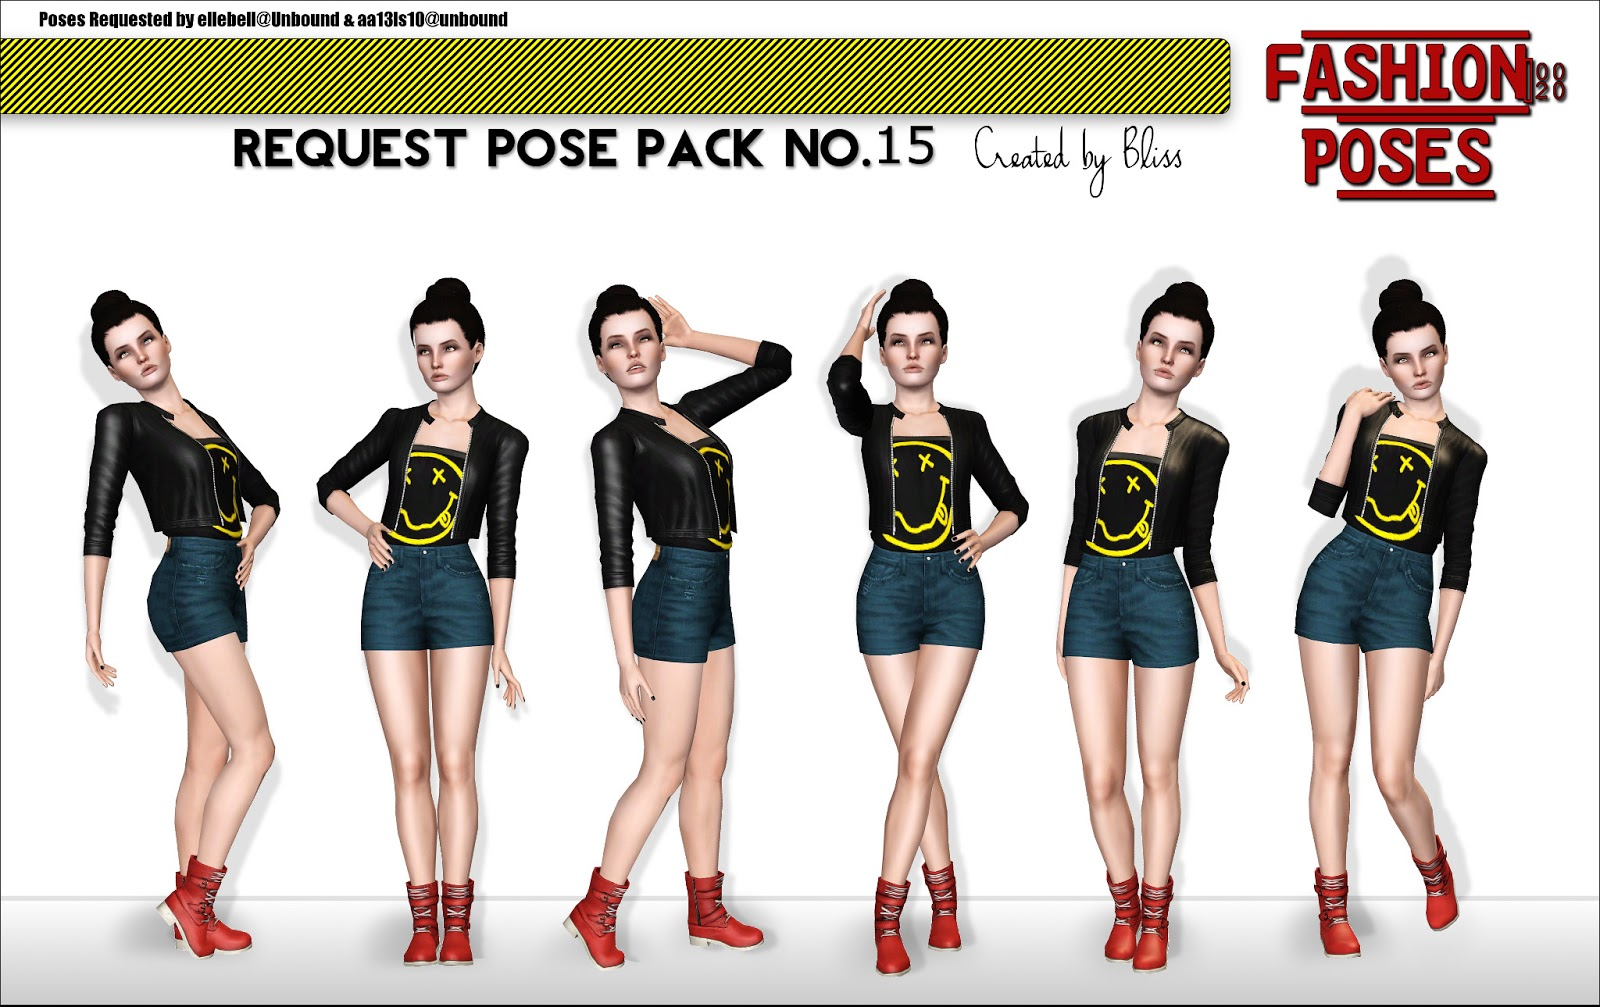 Request Pose Pack No.15 Fashion Poses by Bliss